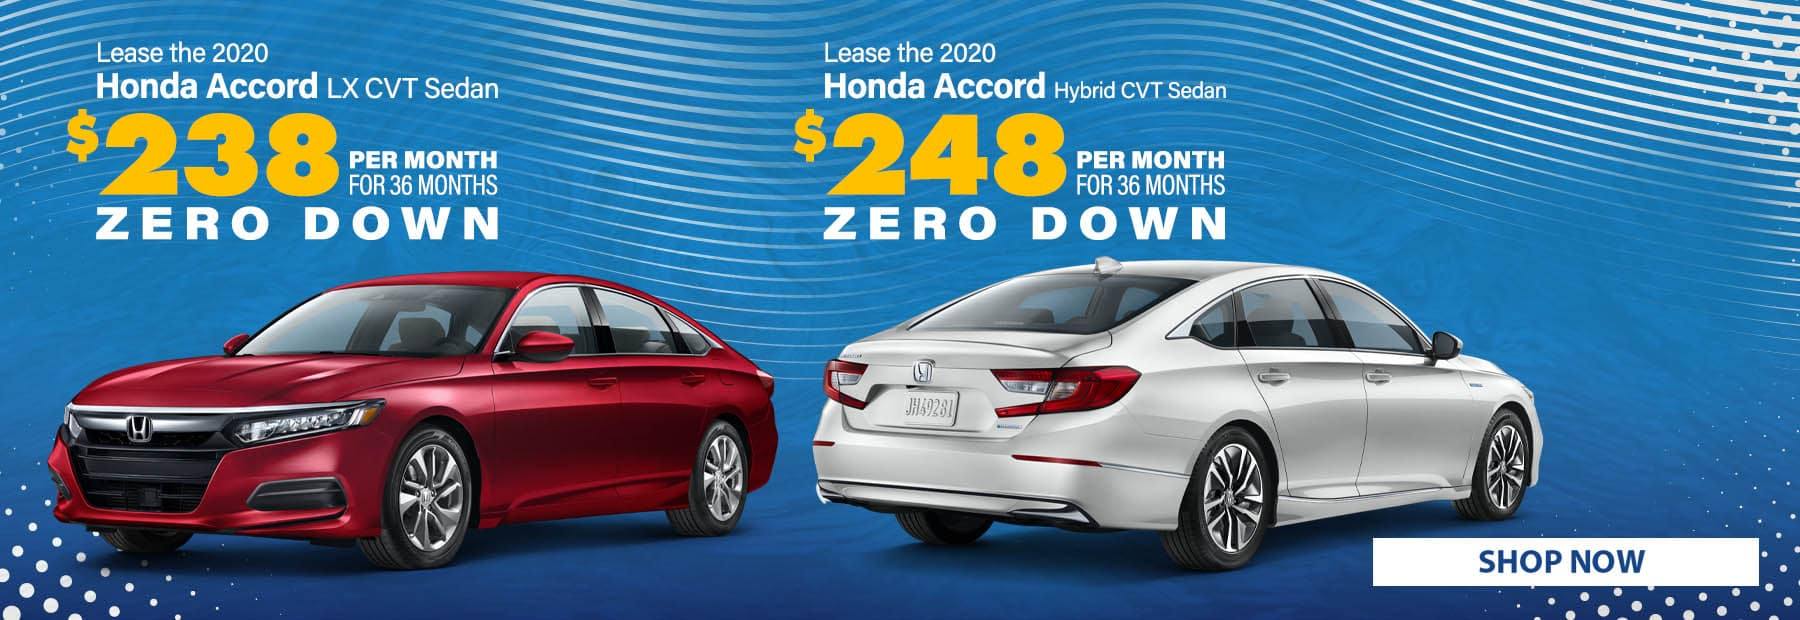 Lease a 2020 Honda Accord LX CVT Sedan for $238/mo. for 36 months with $0 down or Lease a 2020 Honda Accord Hybrid CVT Sedan for $248/mo. for 36 months with $0 down